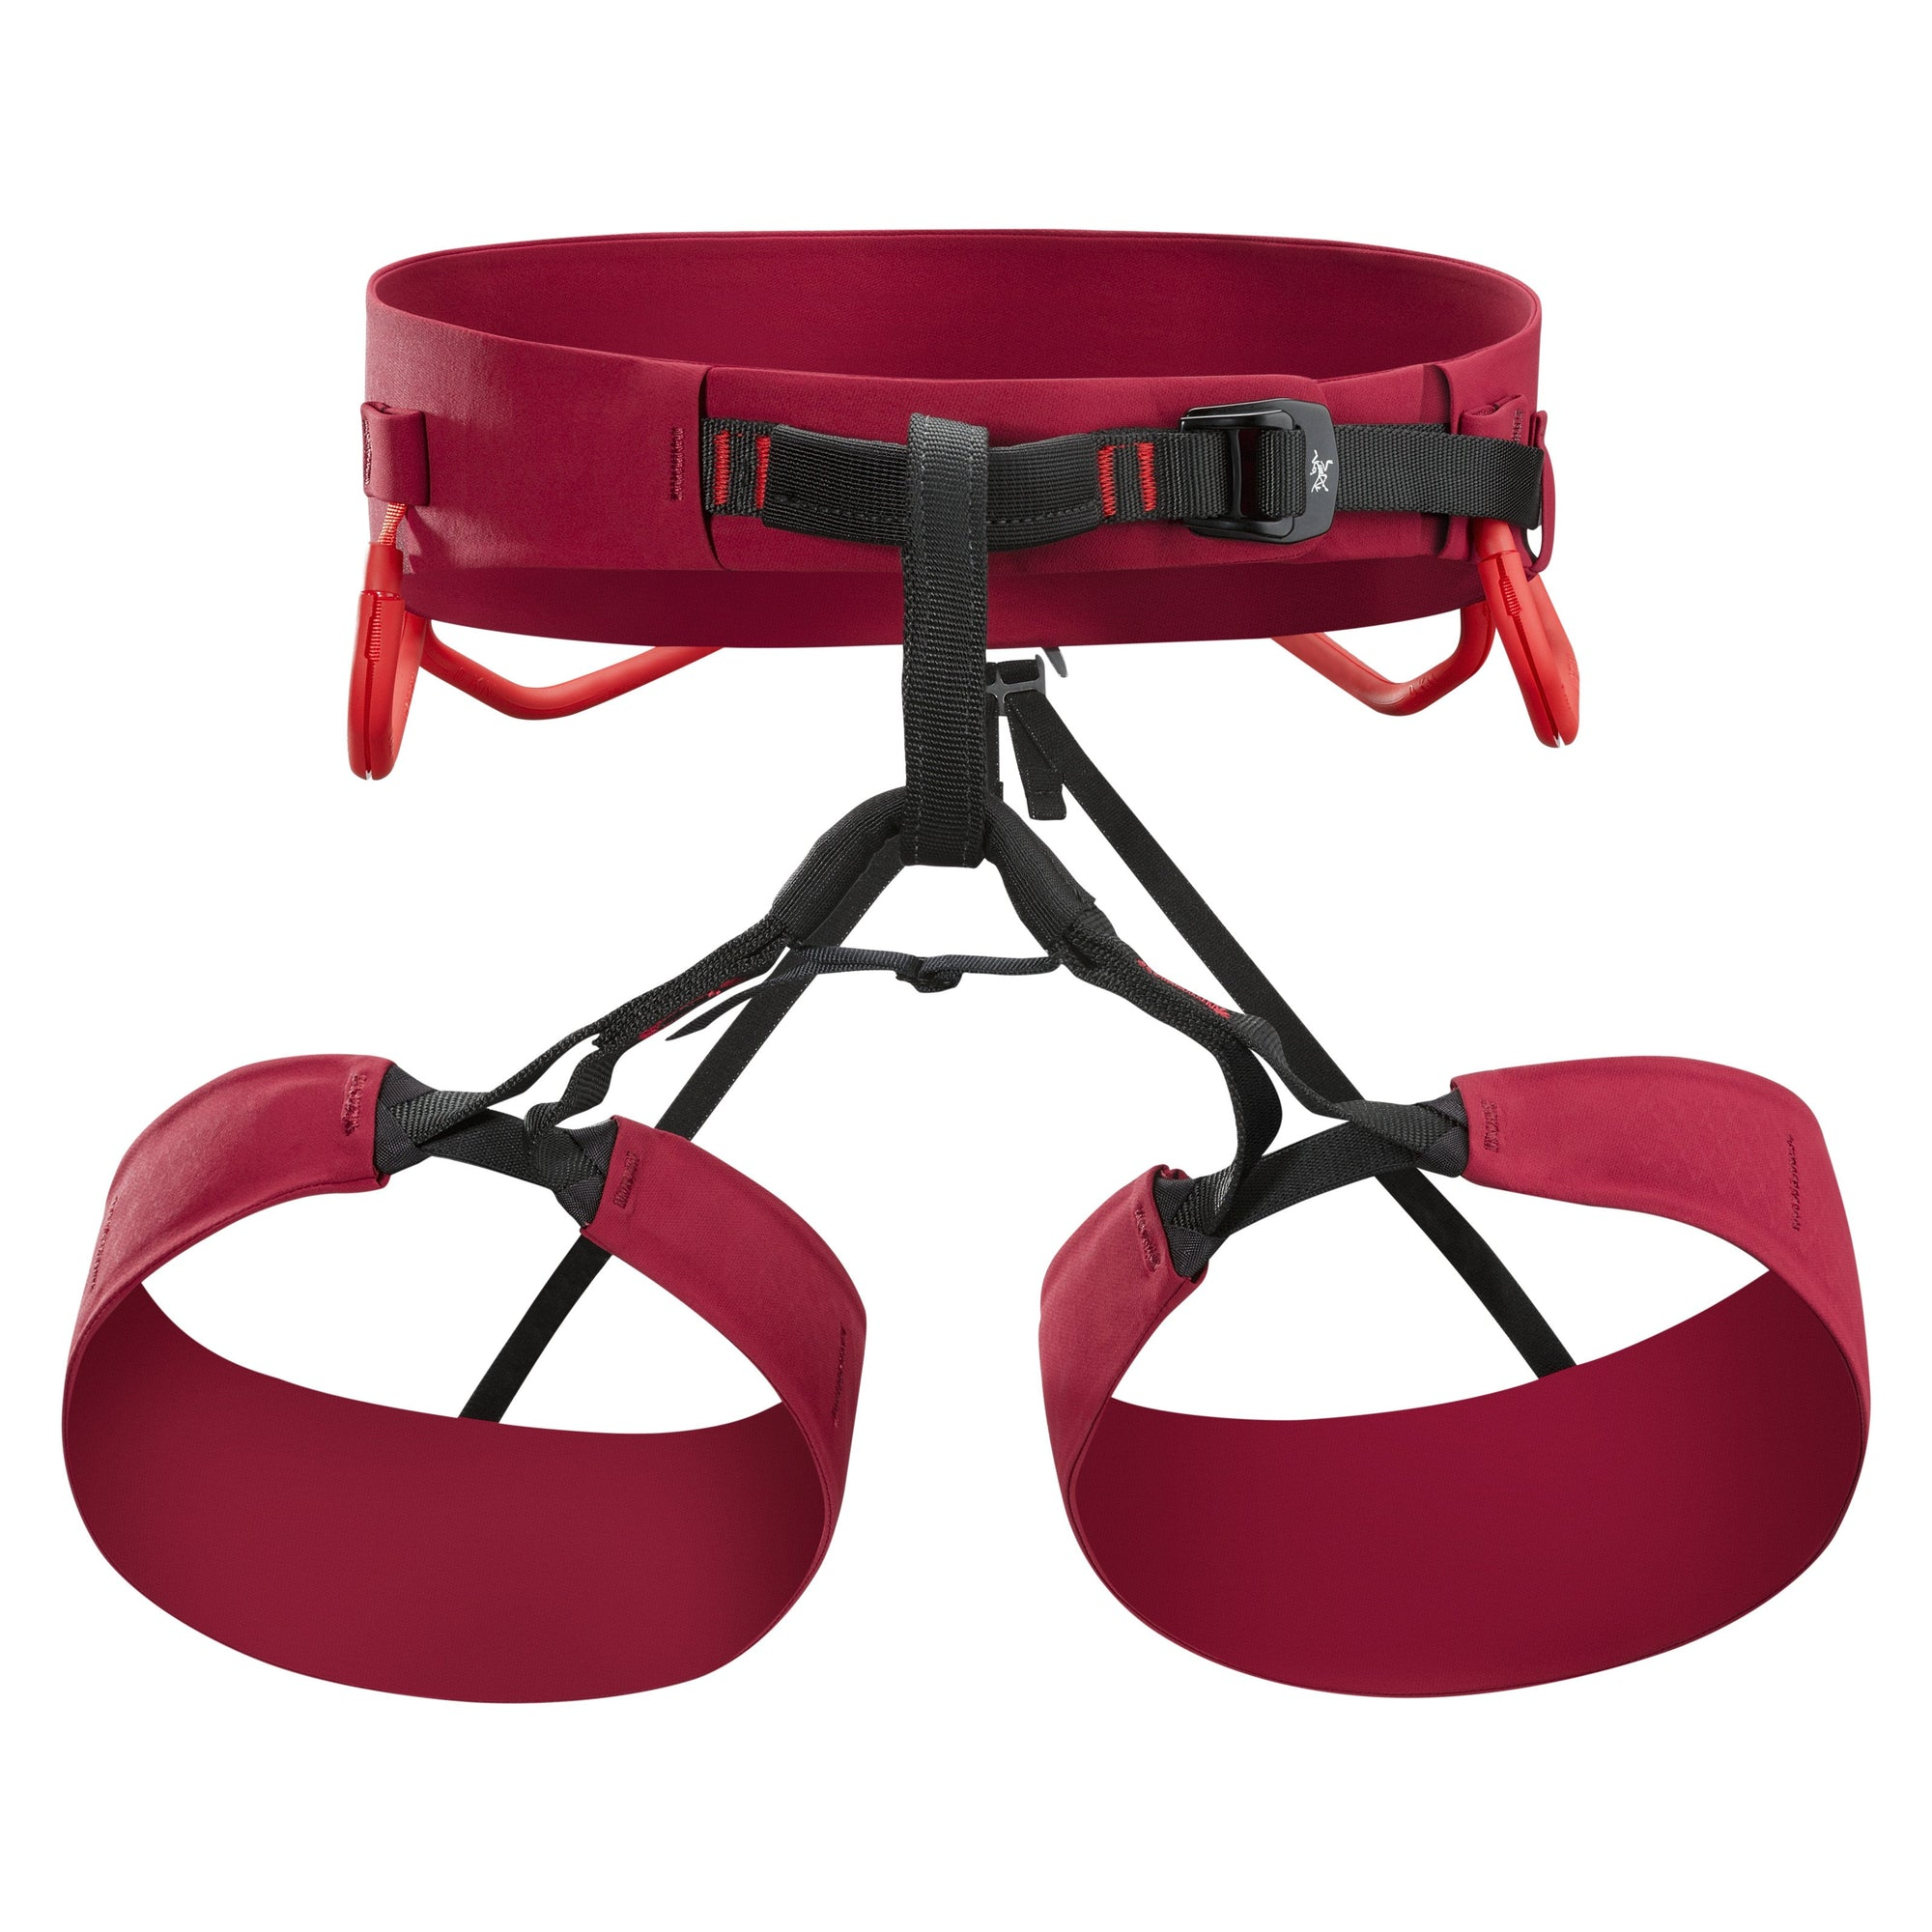 ArcTeryx FL-365 climbing Harness in Red colour